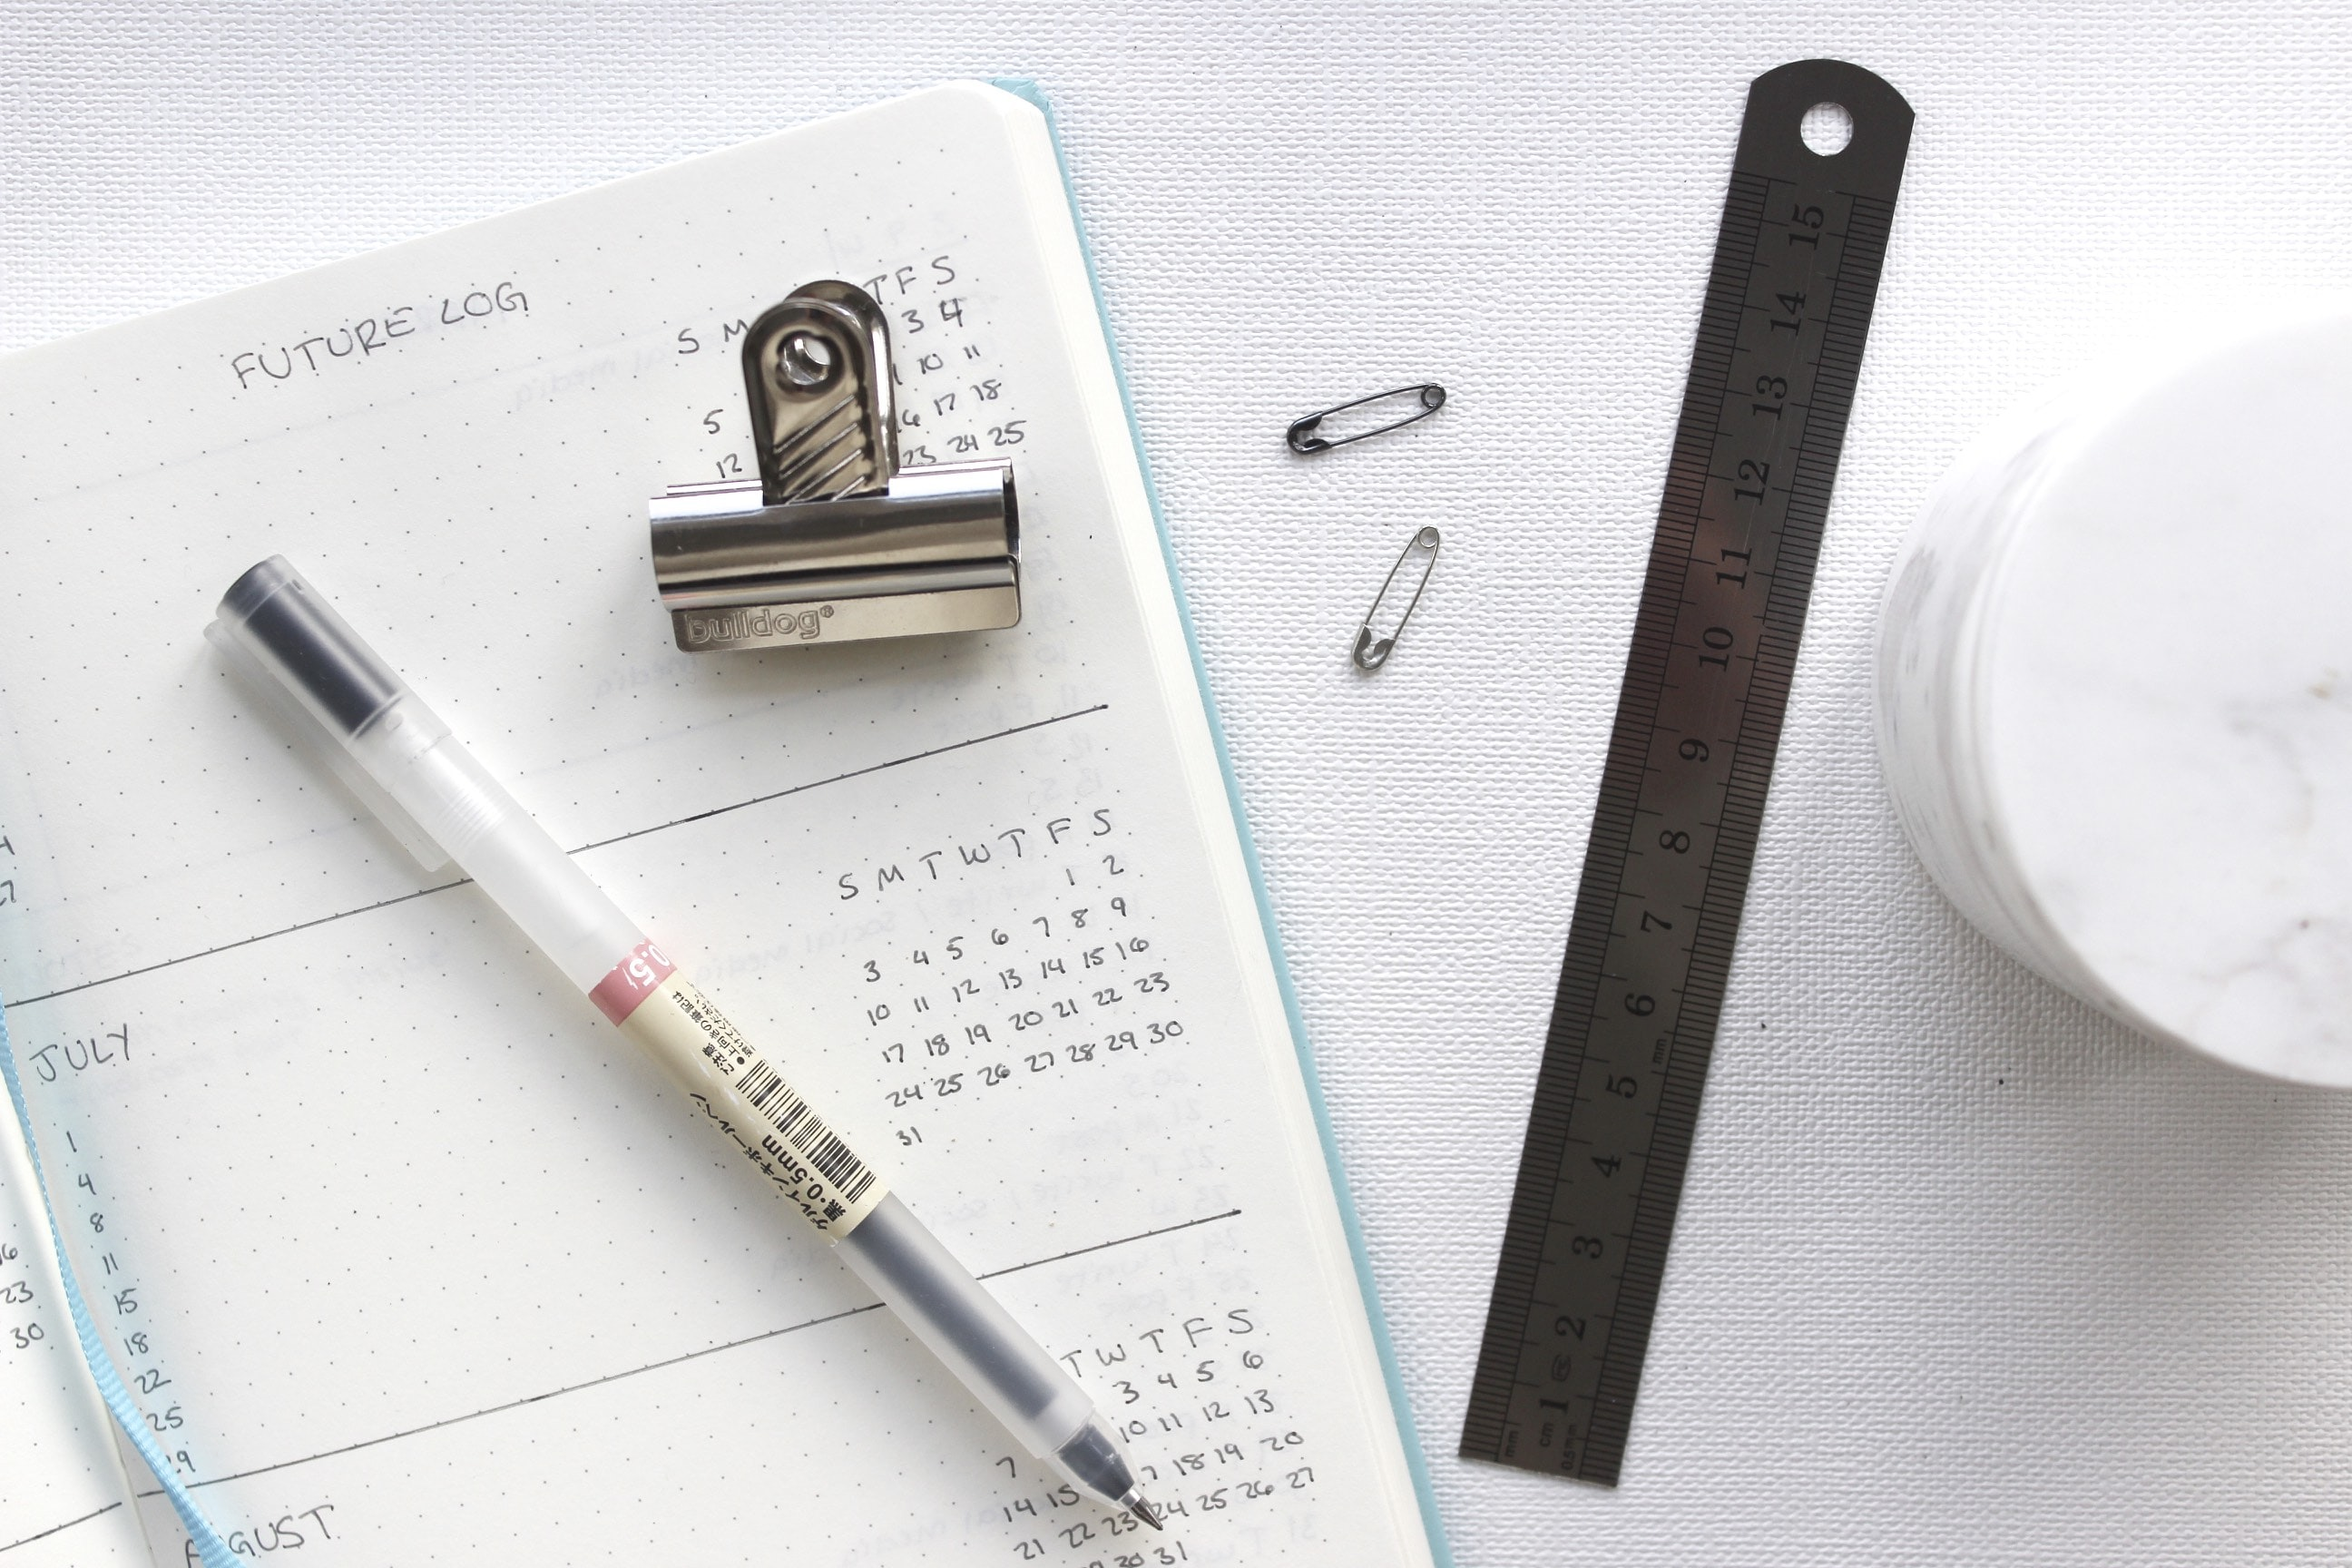 An agenda with a pen, clip, ruler and other items.